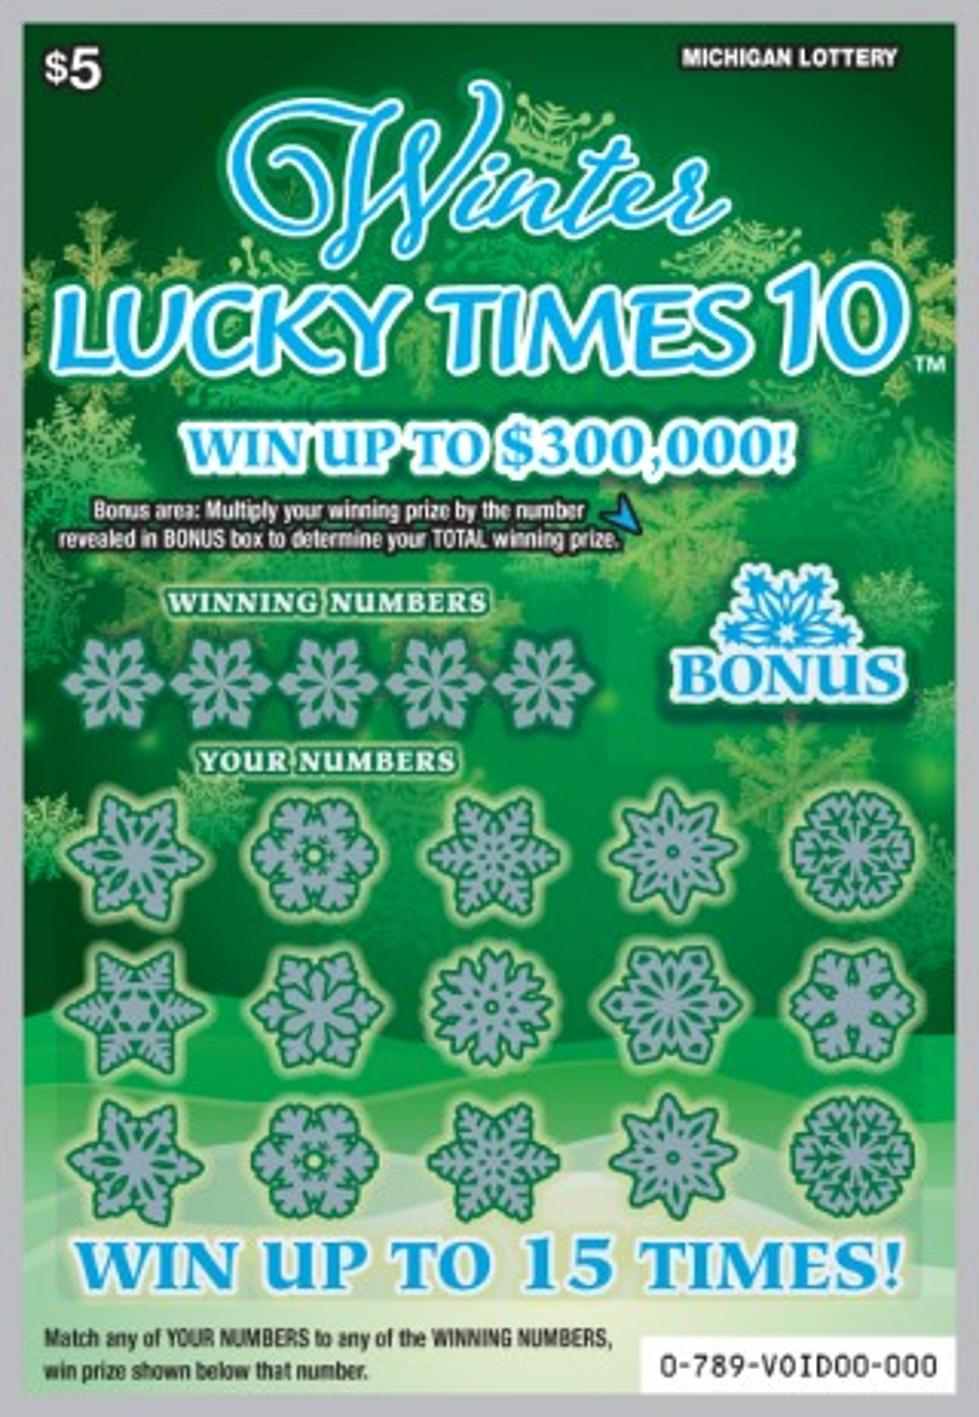 Michigan Lottery Gives You 'Winter Lucky Times 10'